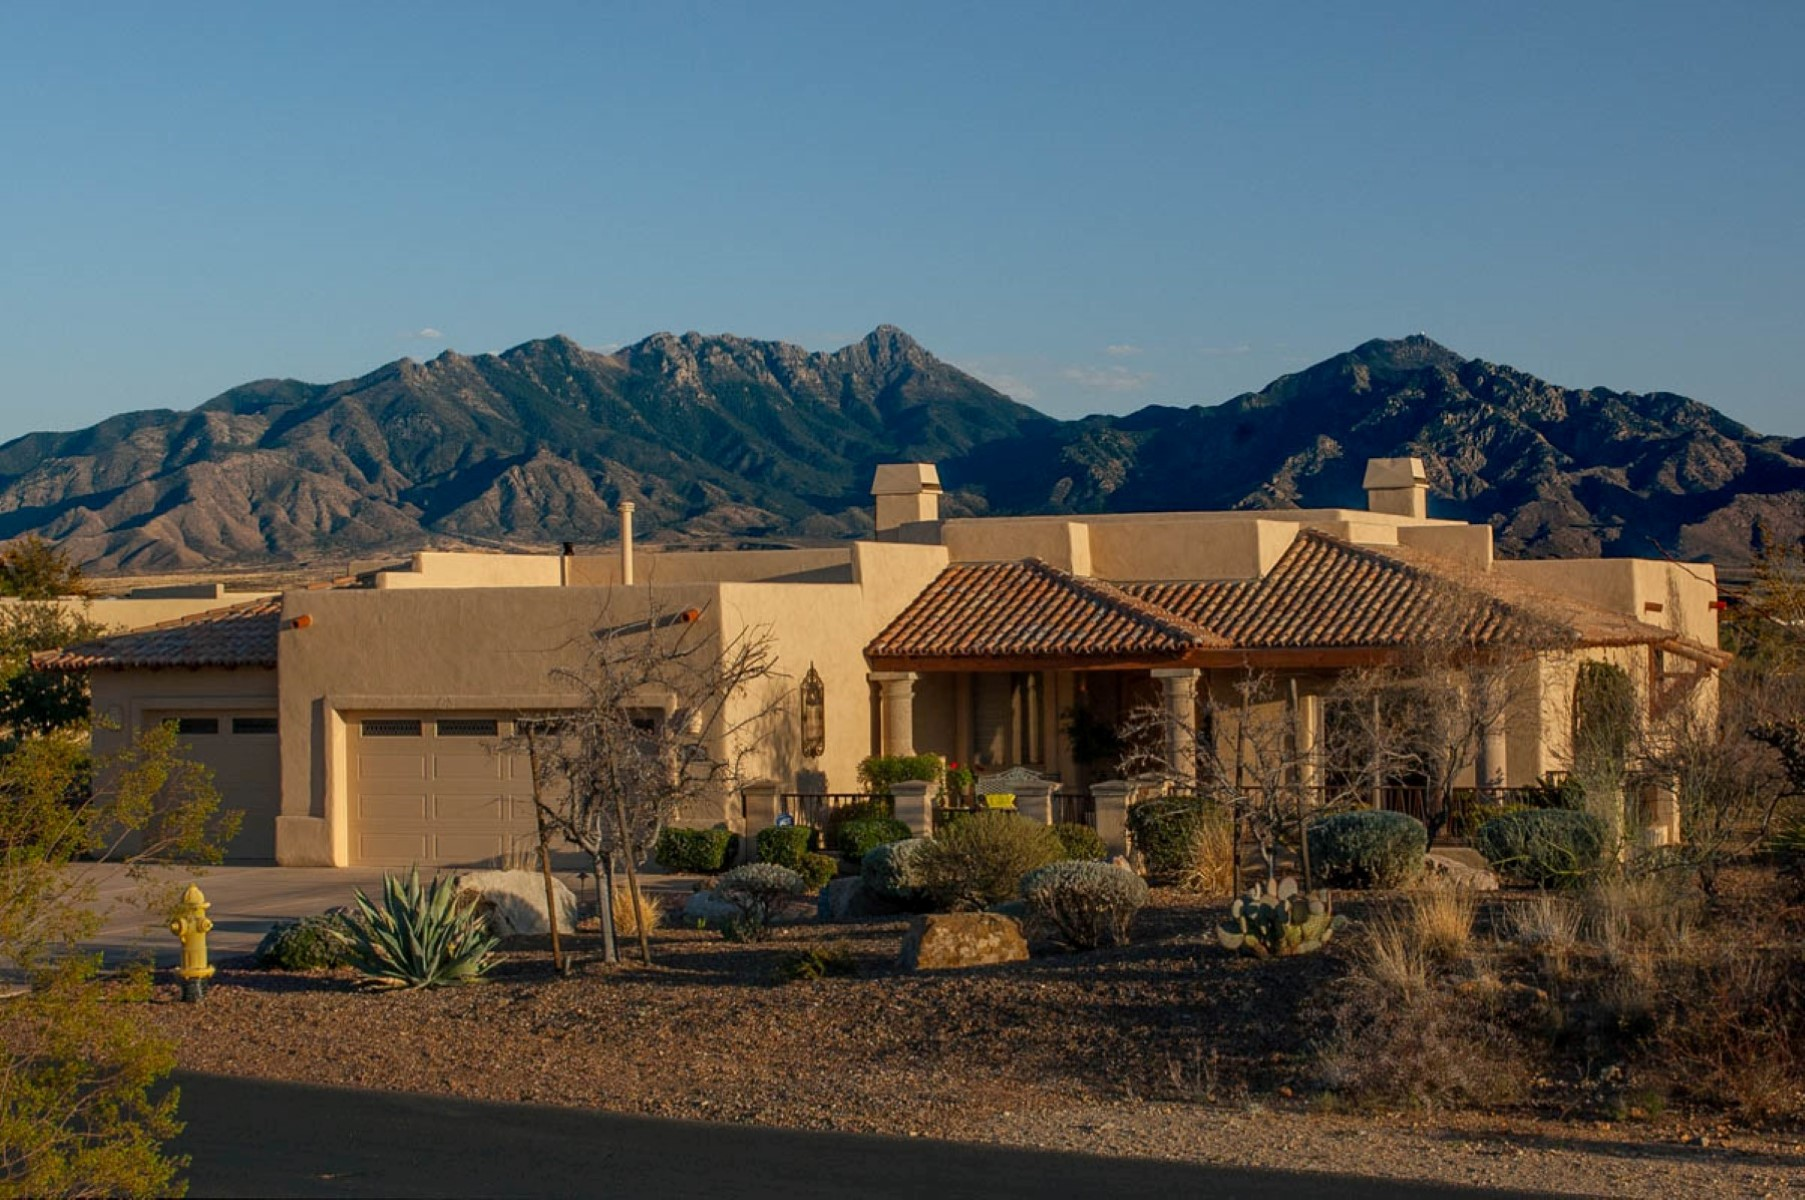 Casa unifamiliar en venta en/de 905 W Placita El Cueto, Green Valley, Arizona ,85622  , EUA